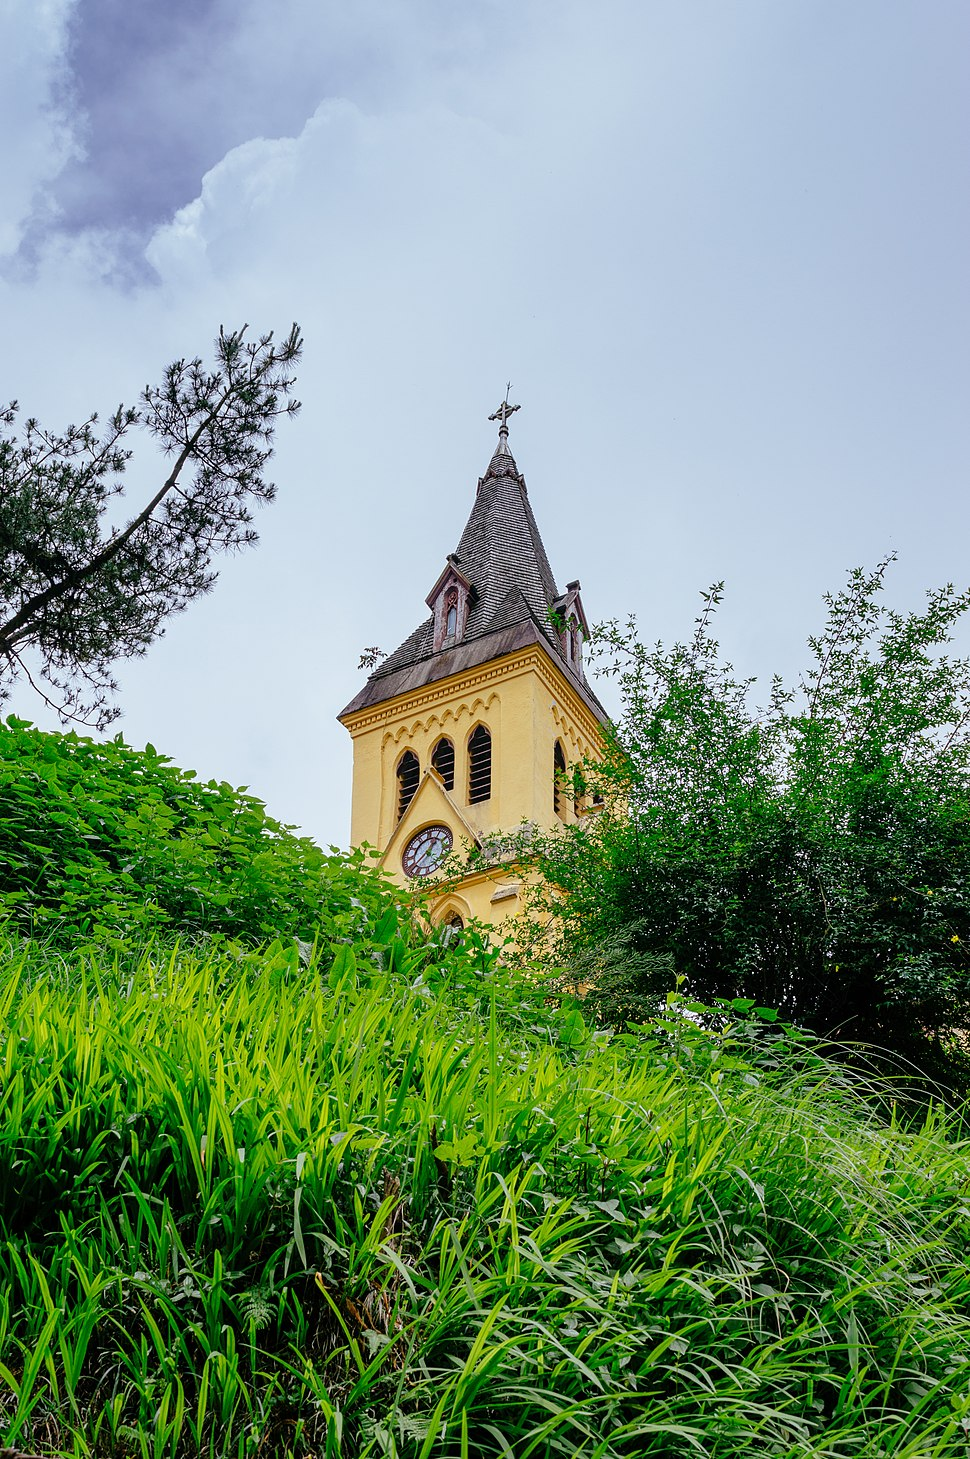 St. Andrews Church situated in Darjeeling